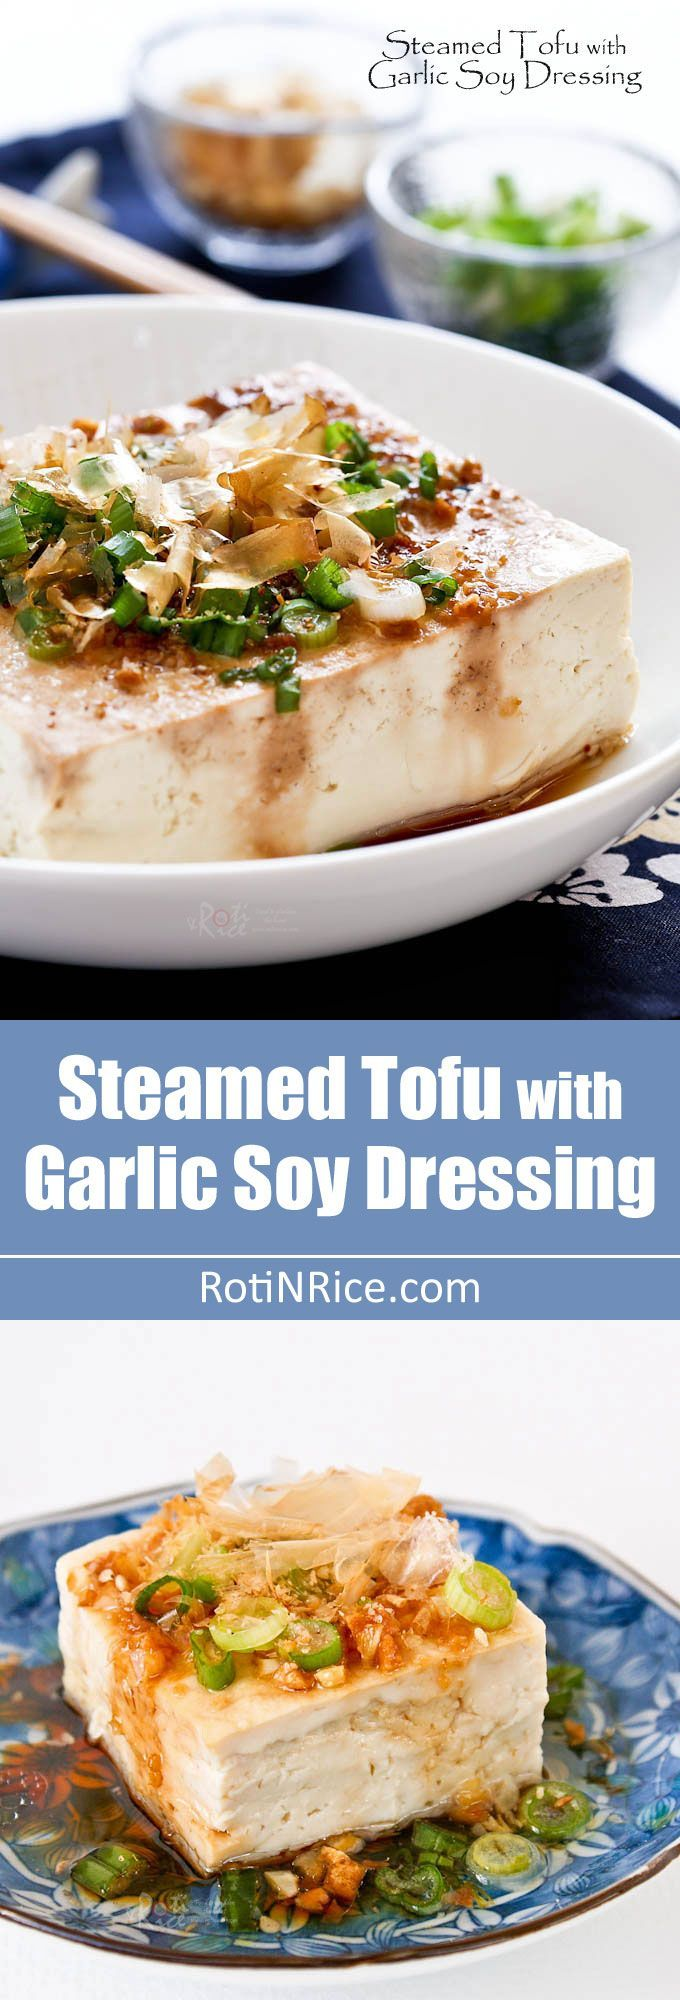 199 best starters appetisers images on pinterest relish recipes steamed tofu with garlic soy dressing a healthy delicious side dish to go with rice forumfinder Image collections